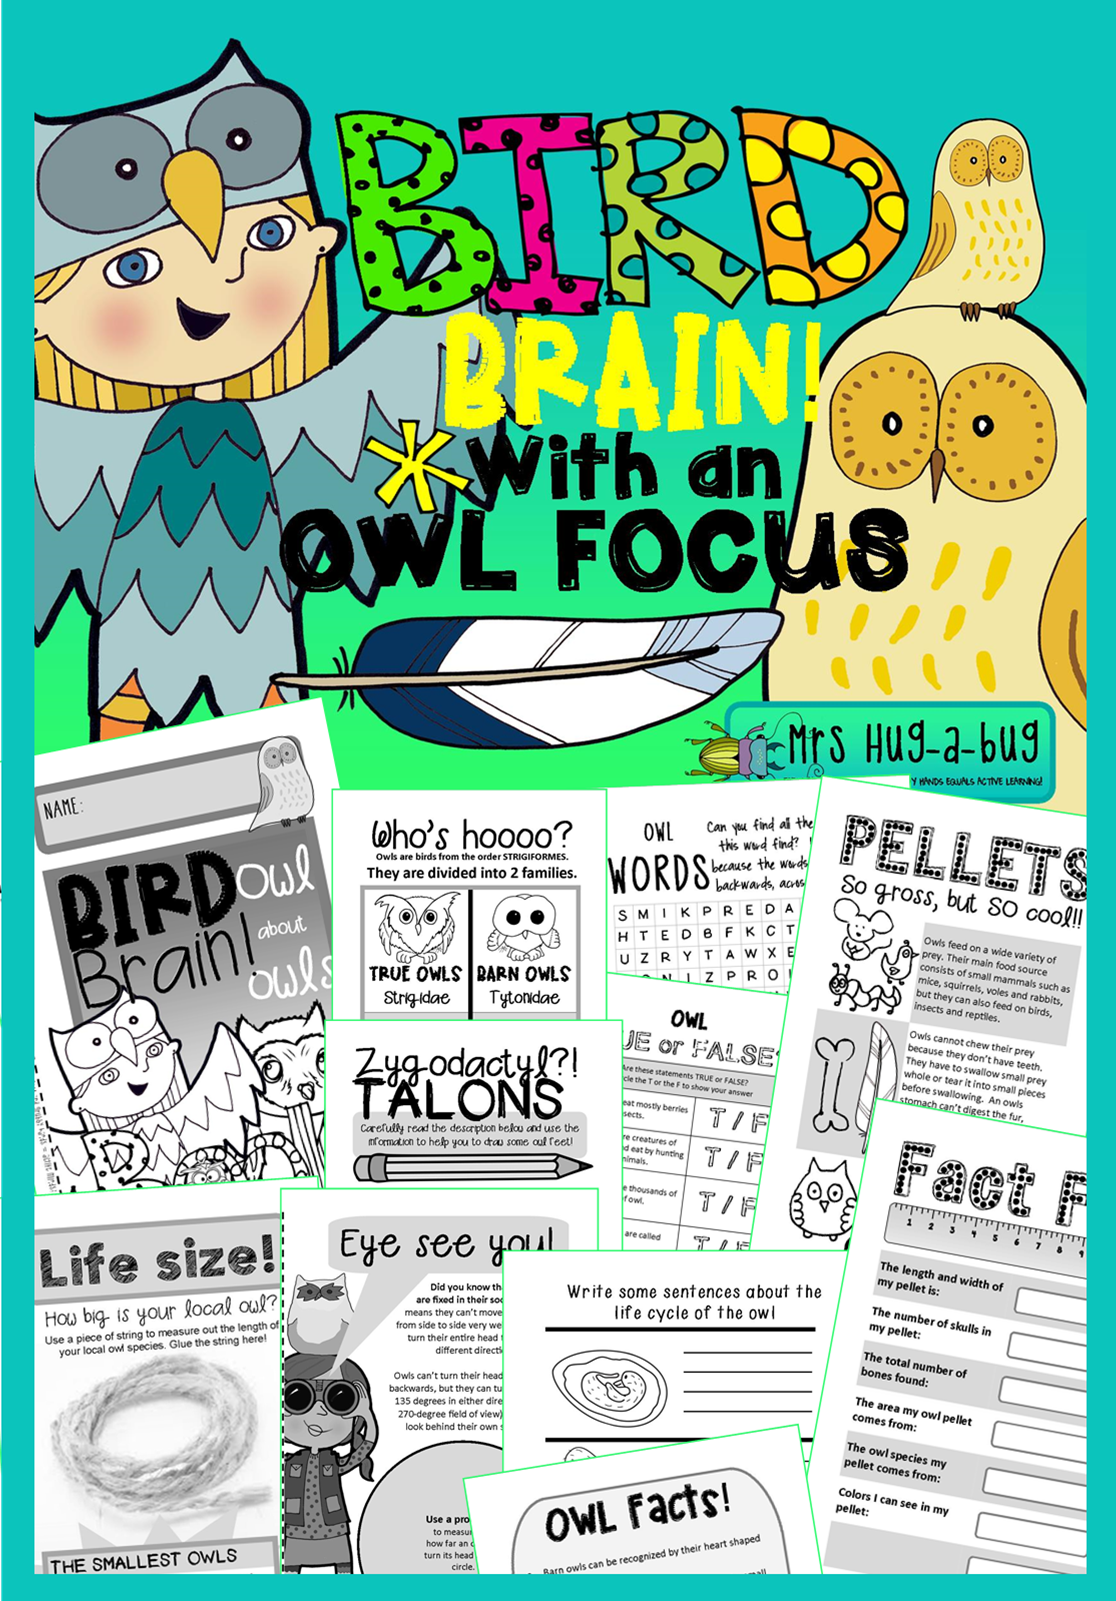 Owl About Owls Fun Amp Facts Bird Booklet With An Owl